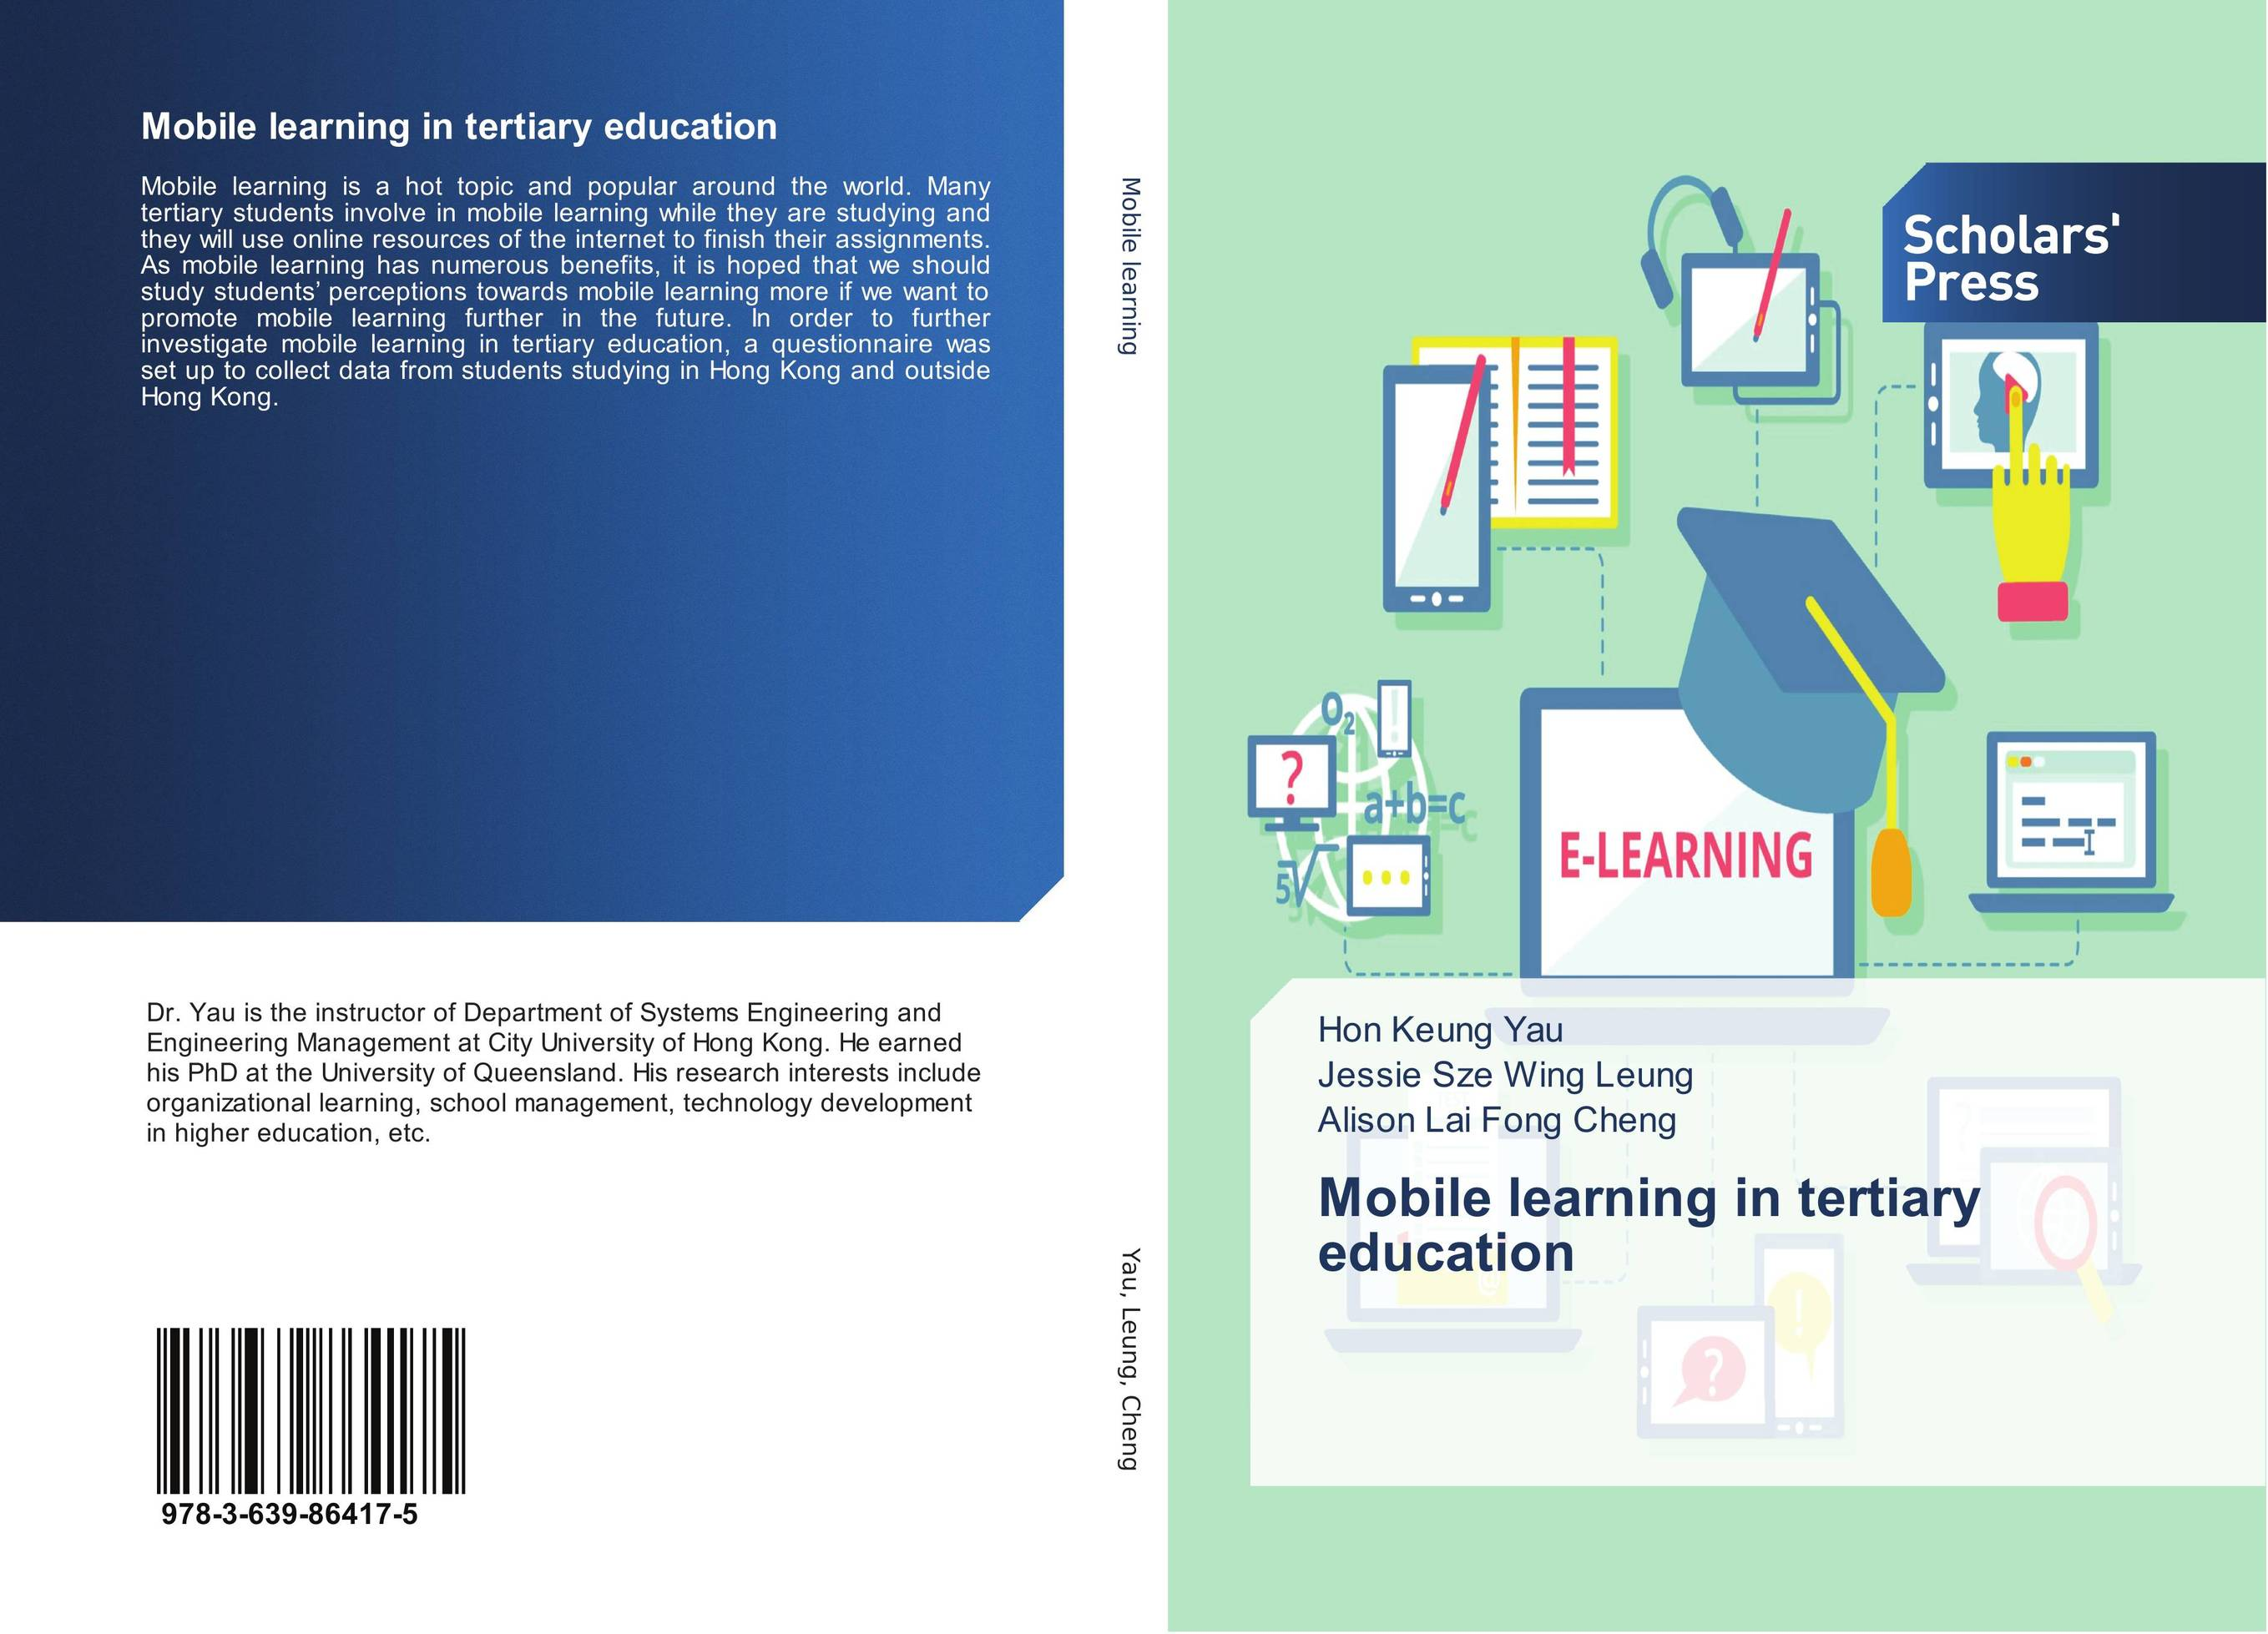 Mobile learning in tertiary education learning resources набор пробей